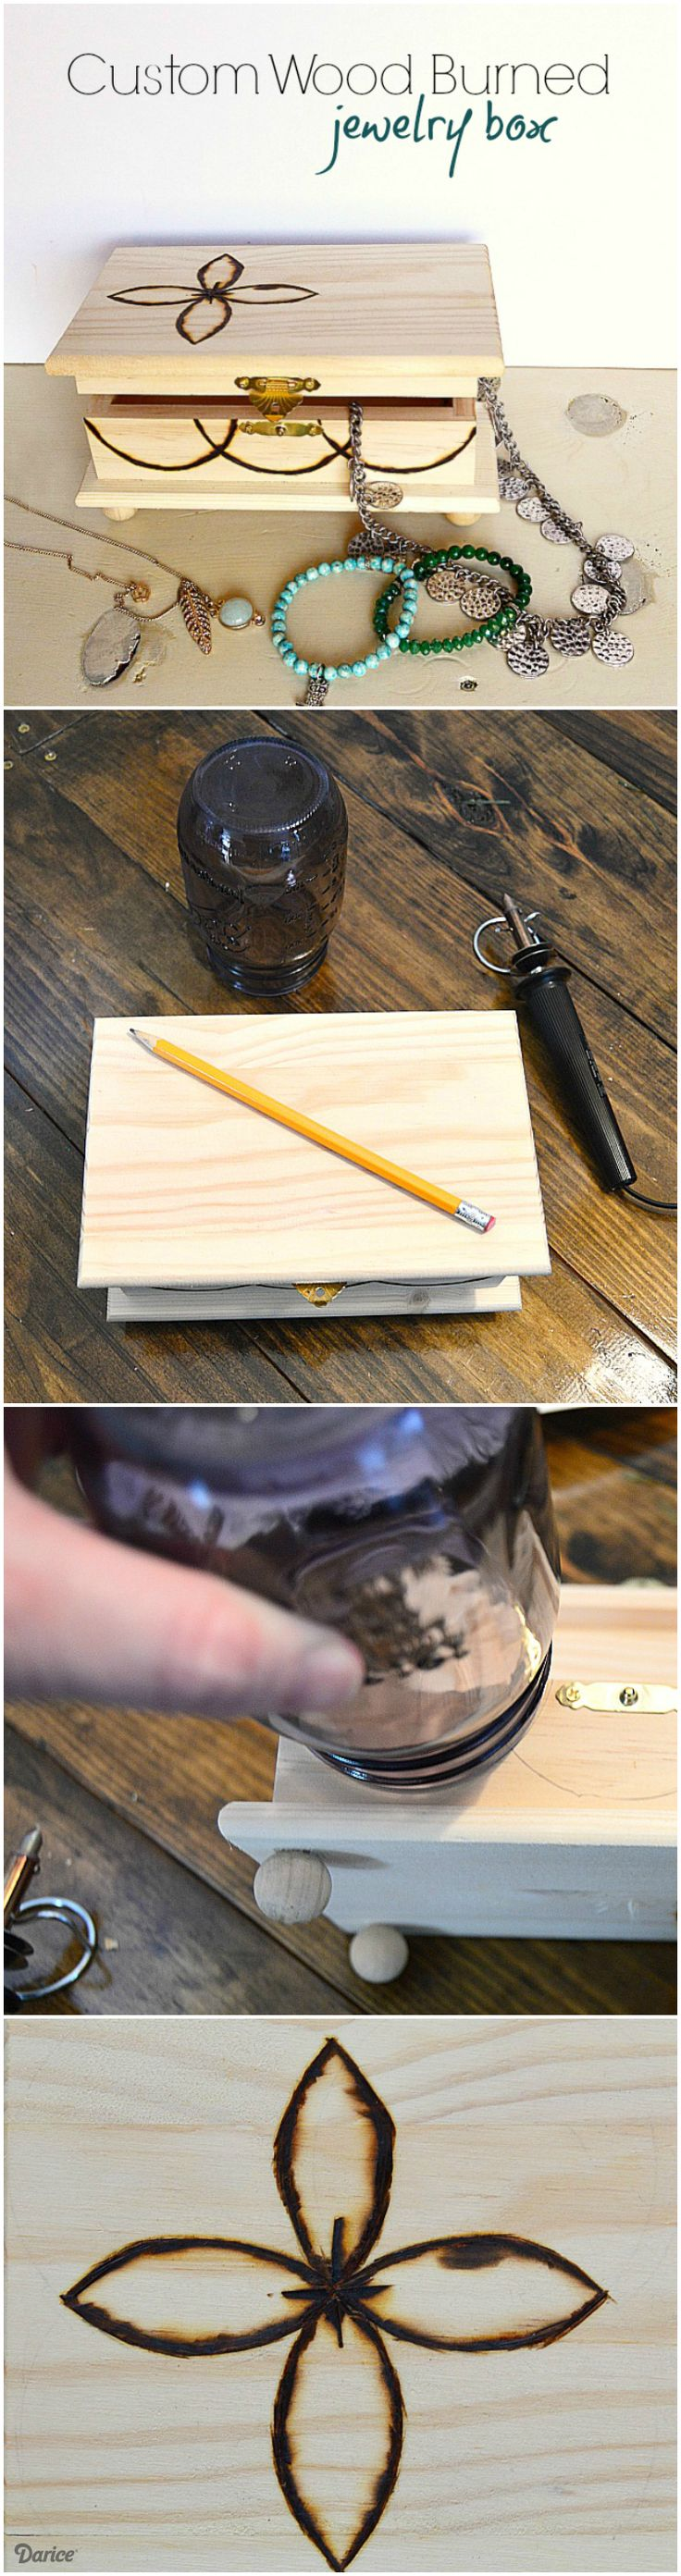 It is easy to learn how to wood burn with this beginner's tutorial for a custom jewelry box. Have fun creating an original design to showcase on the piece.